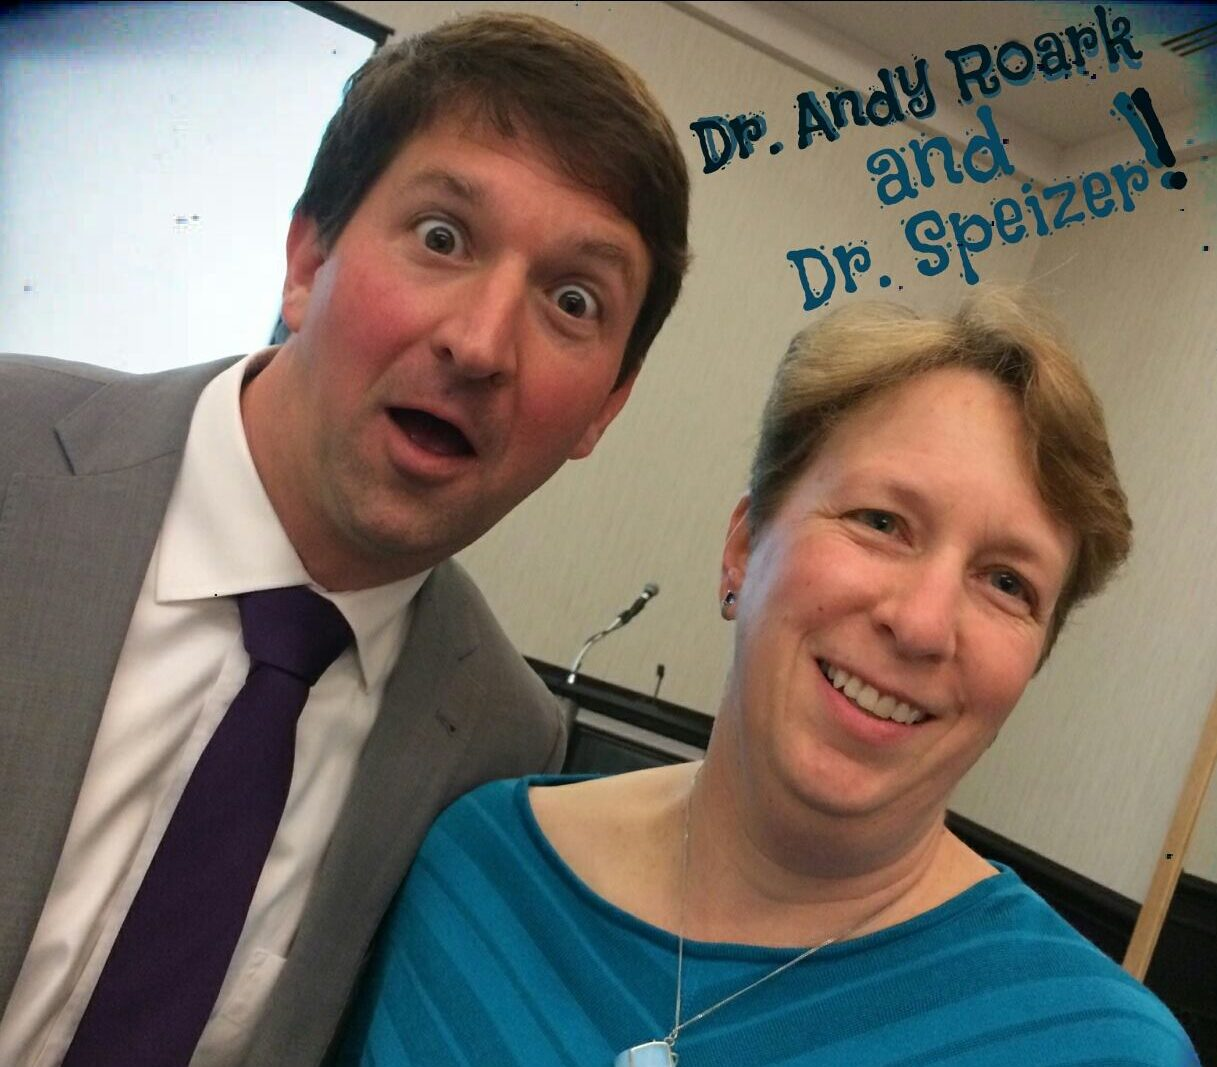 Drs Roark and Speizer